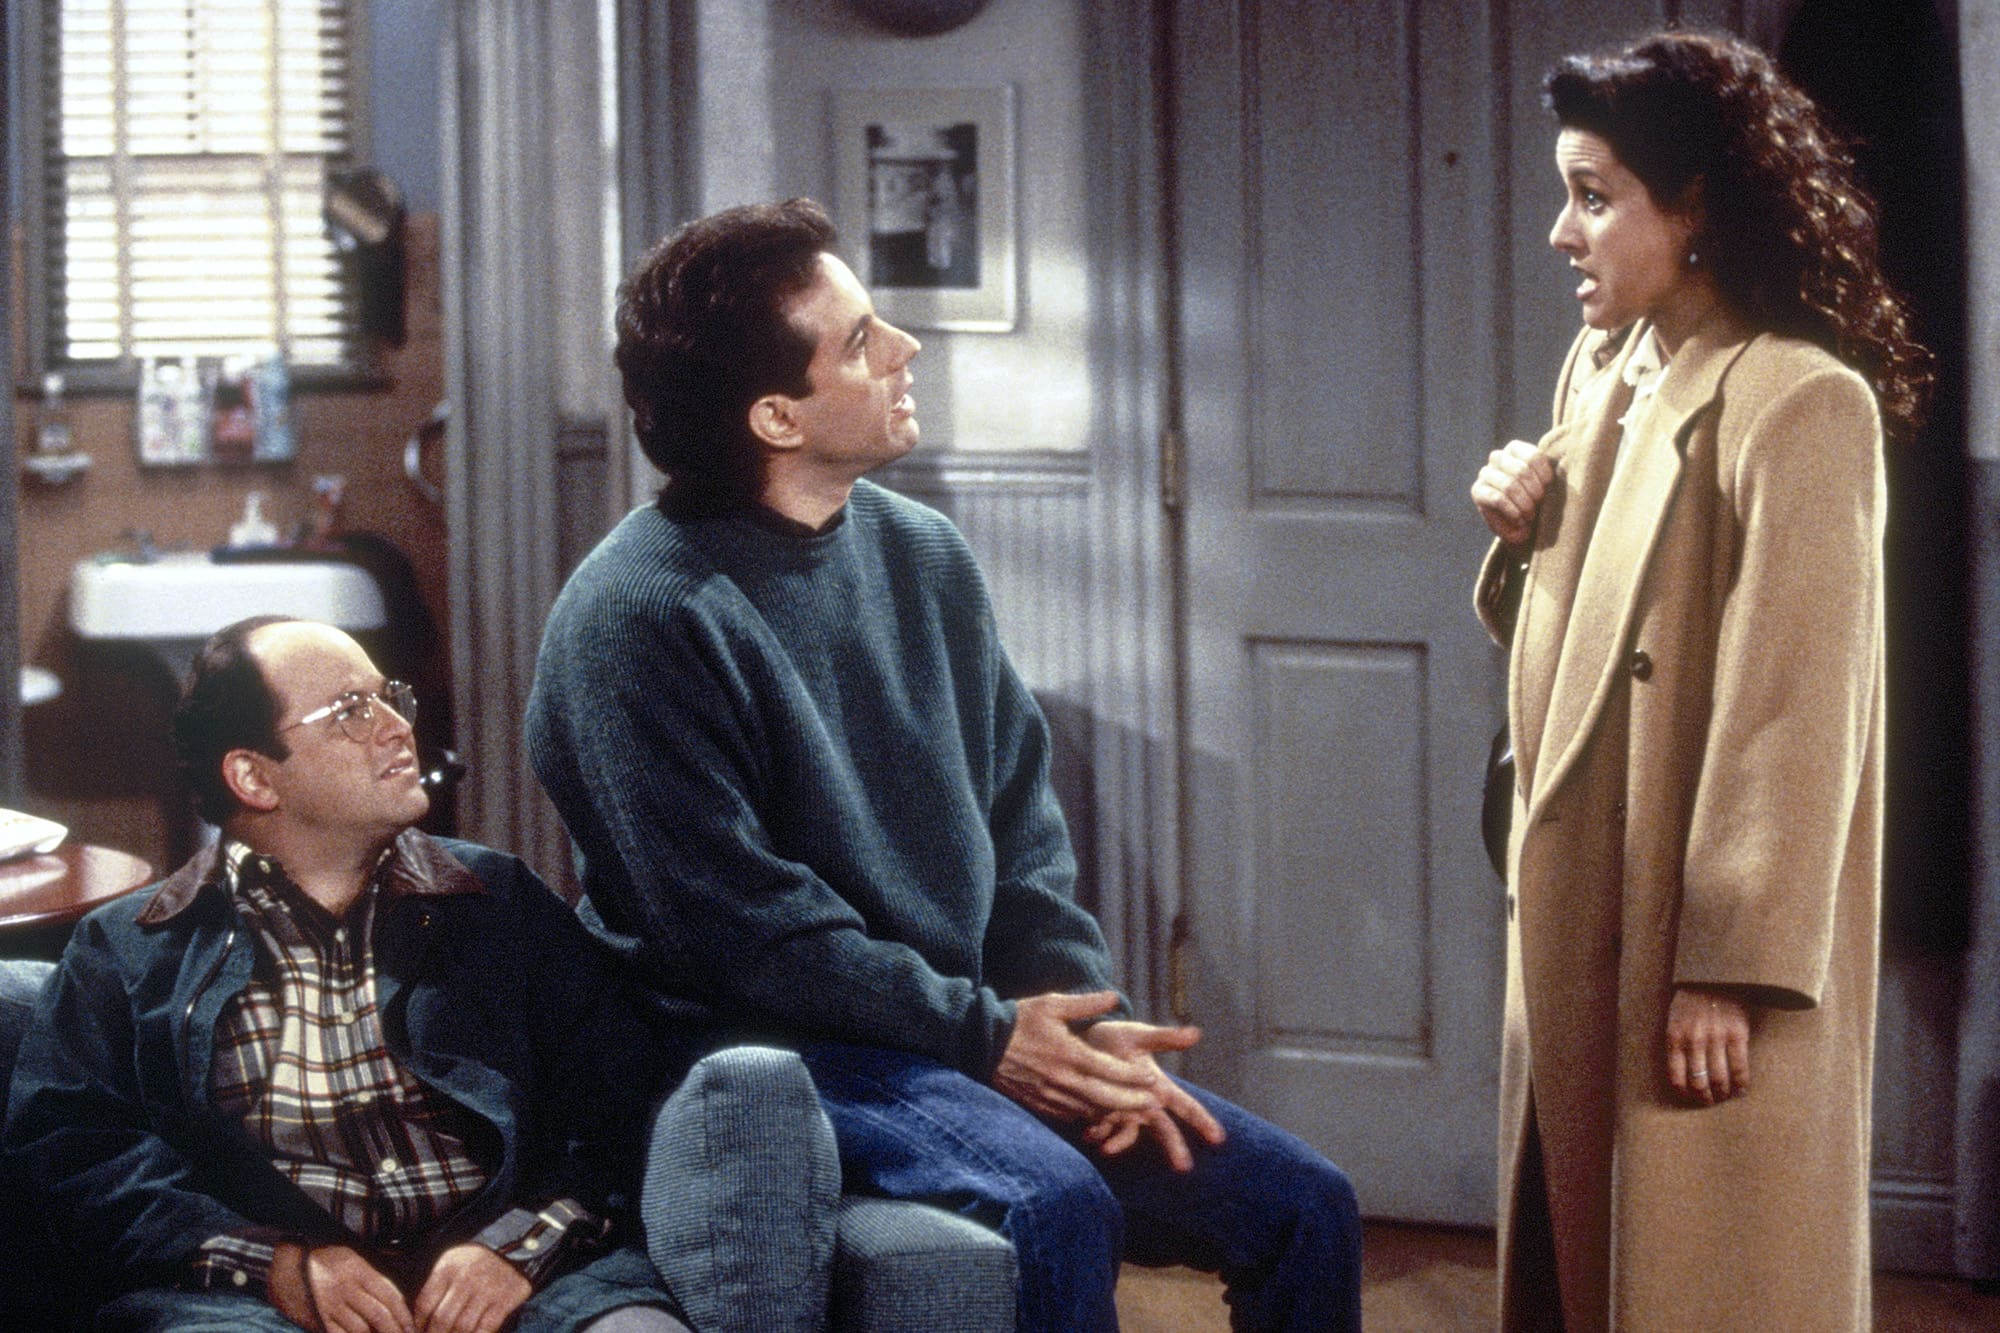 'Seinfeld' could be the last 'white whale' TV show for Netflix to snag